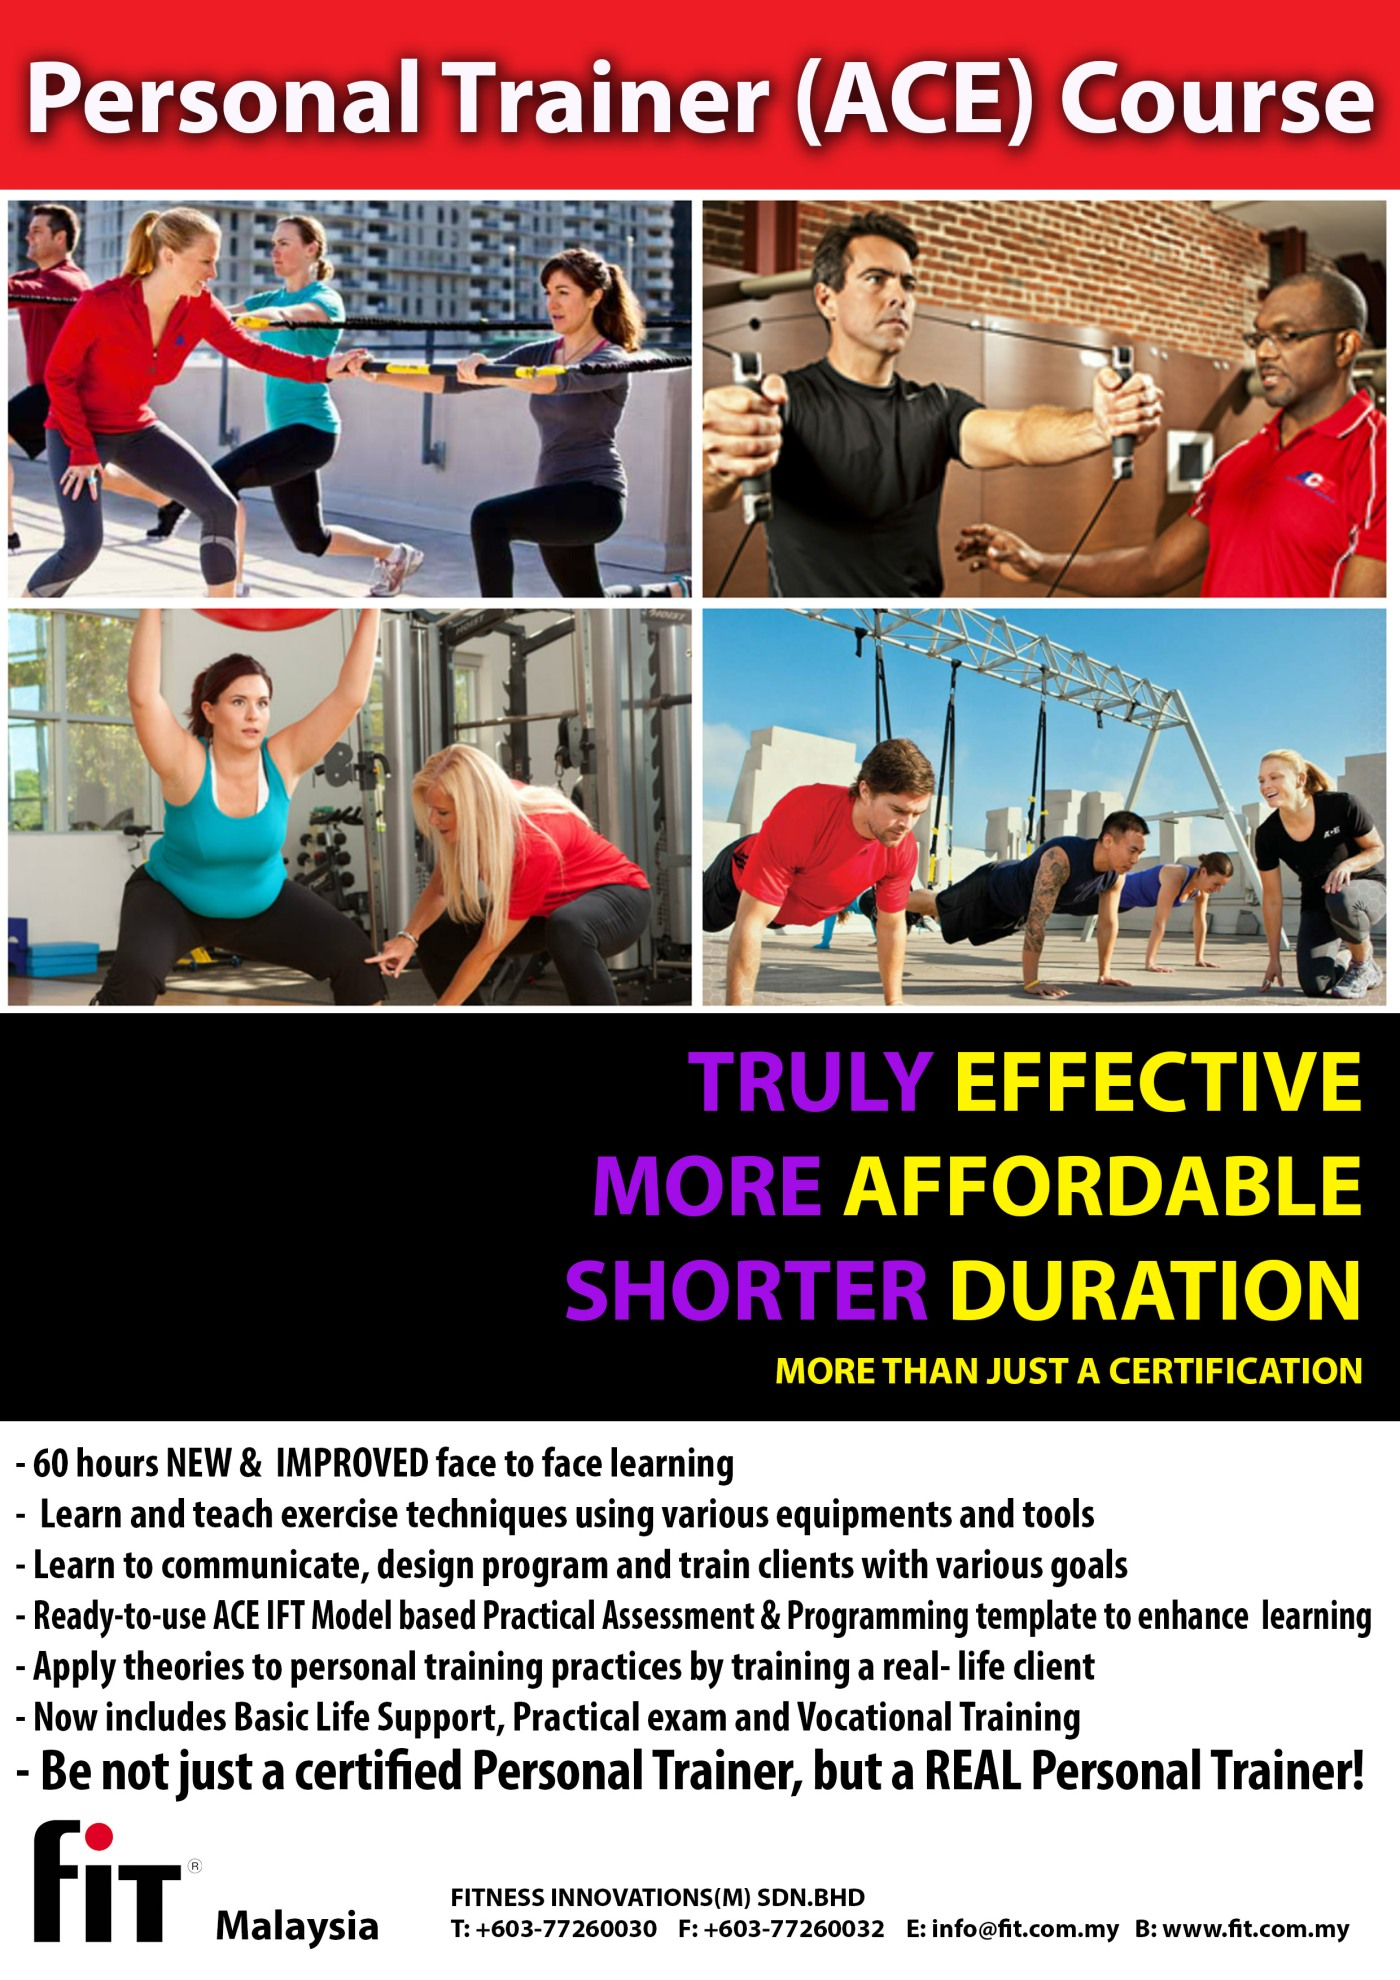 Ace Personal Training Certification Course Dec 2013 Penang Momma